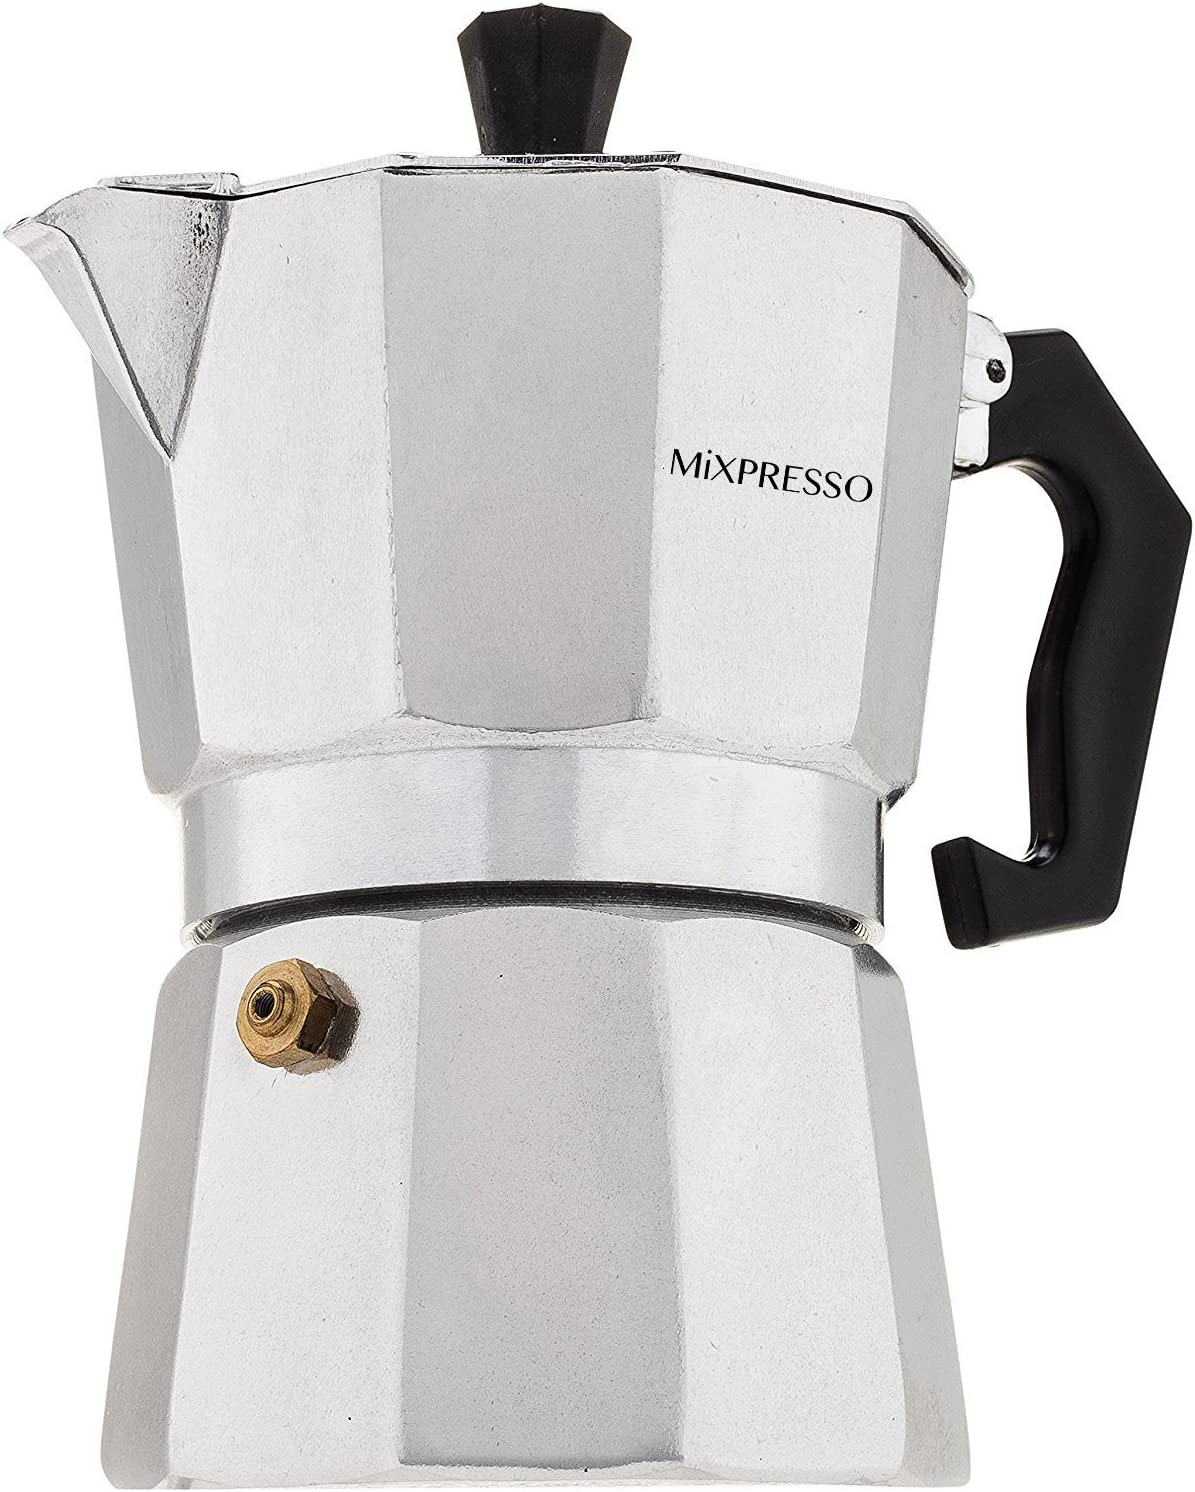 Moka Pot 3 Cup (6 oz) Coffee Maker- Stovetop Espresso Maker Easy To Use And Clean Italian Design For Best Espresso Coffee - By Mixpresso Coffee